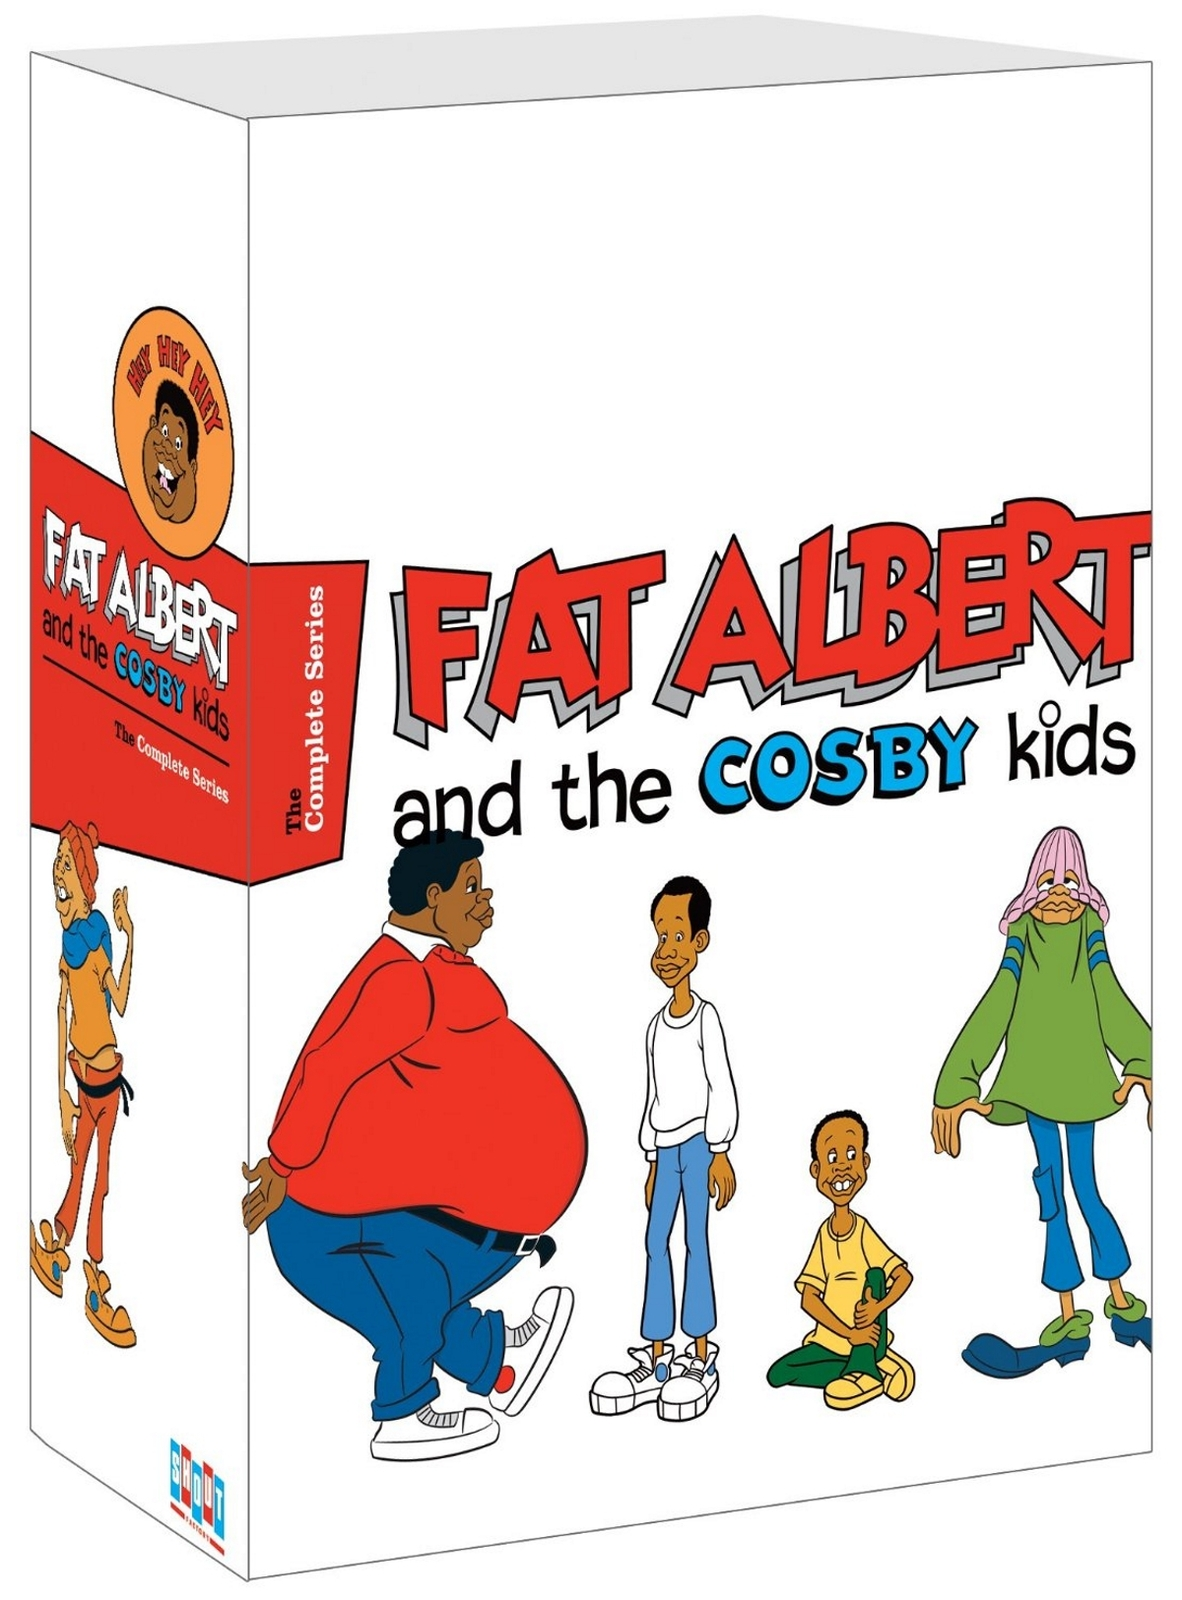 Fat albert and the cosby kids the complete series  dvd 2013 16 disc set